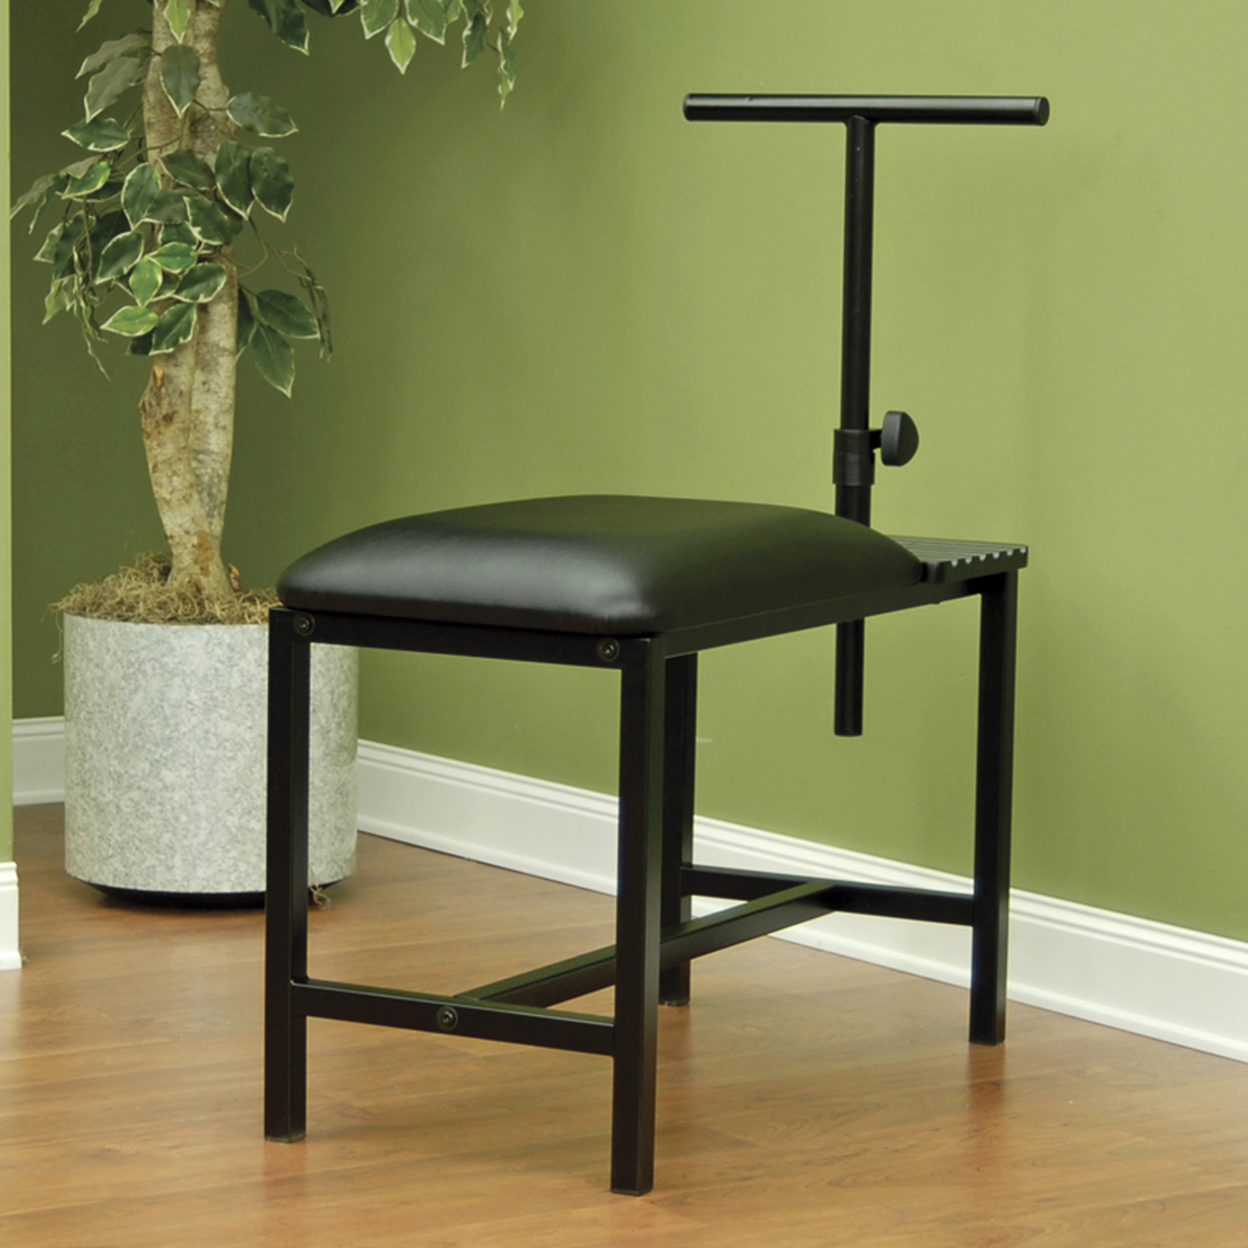 Offex Home Office Studio Bench - Black offex home office plinth ottoman dark taupe